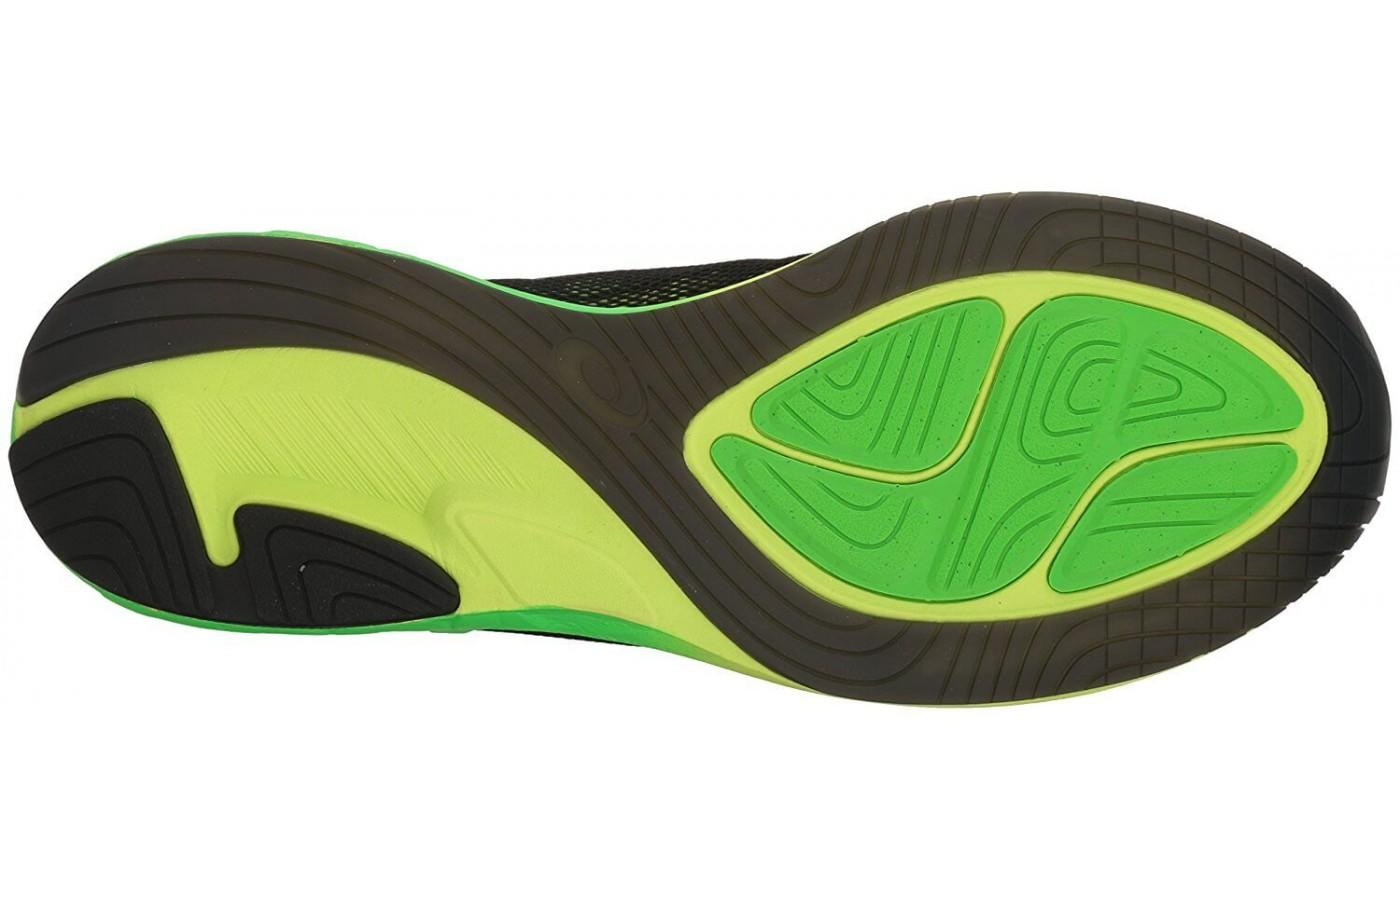 the outsole of the Asics Noosa FF is made from three different rubber compounds